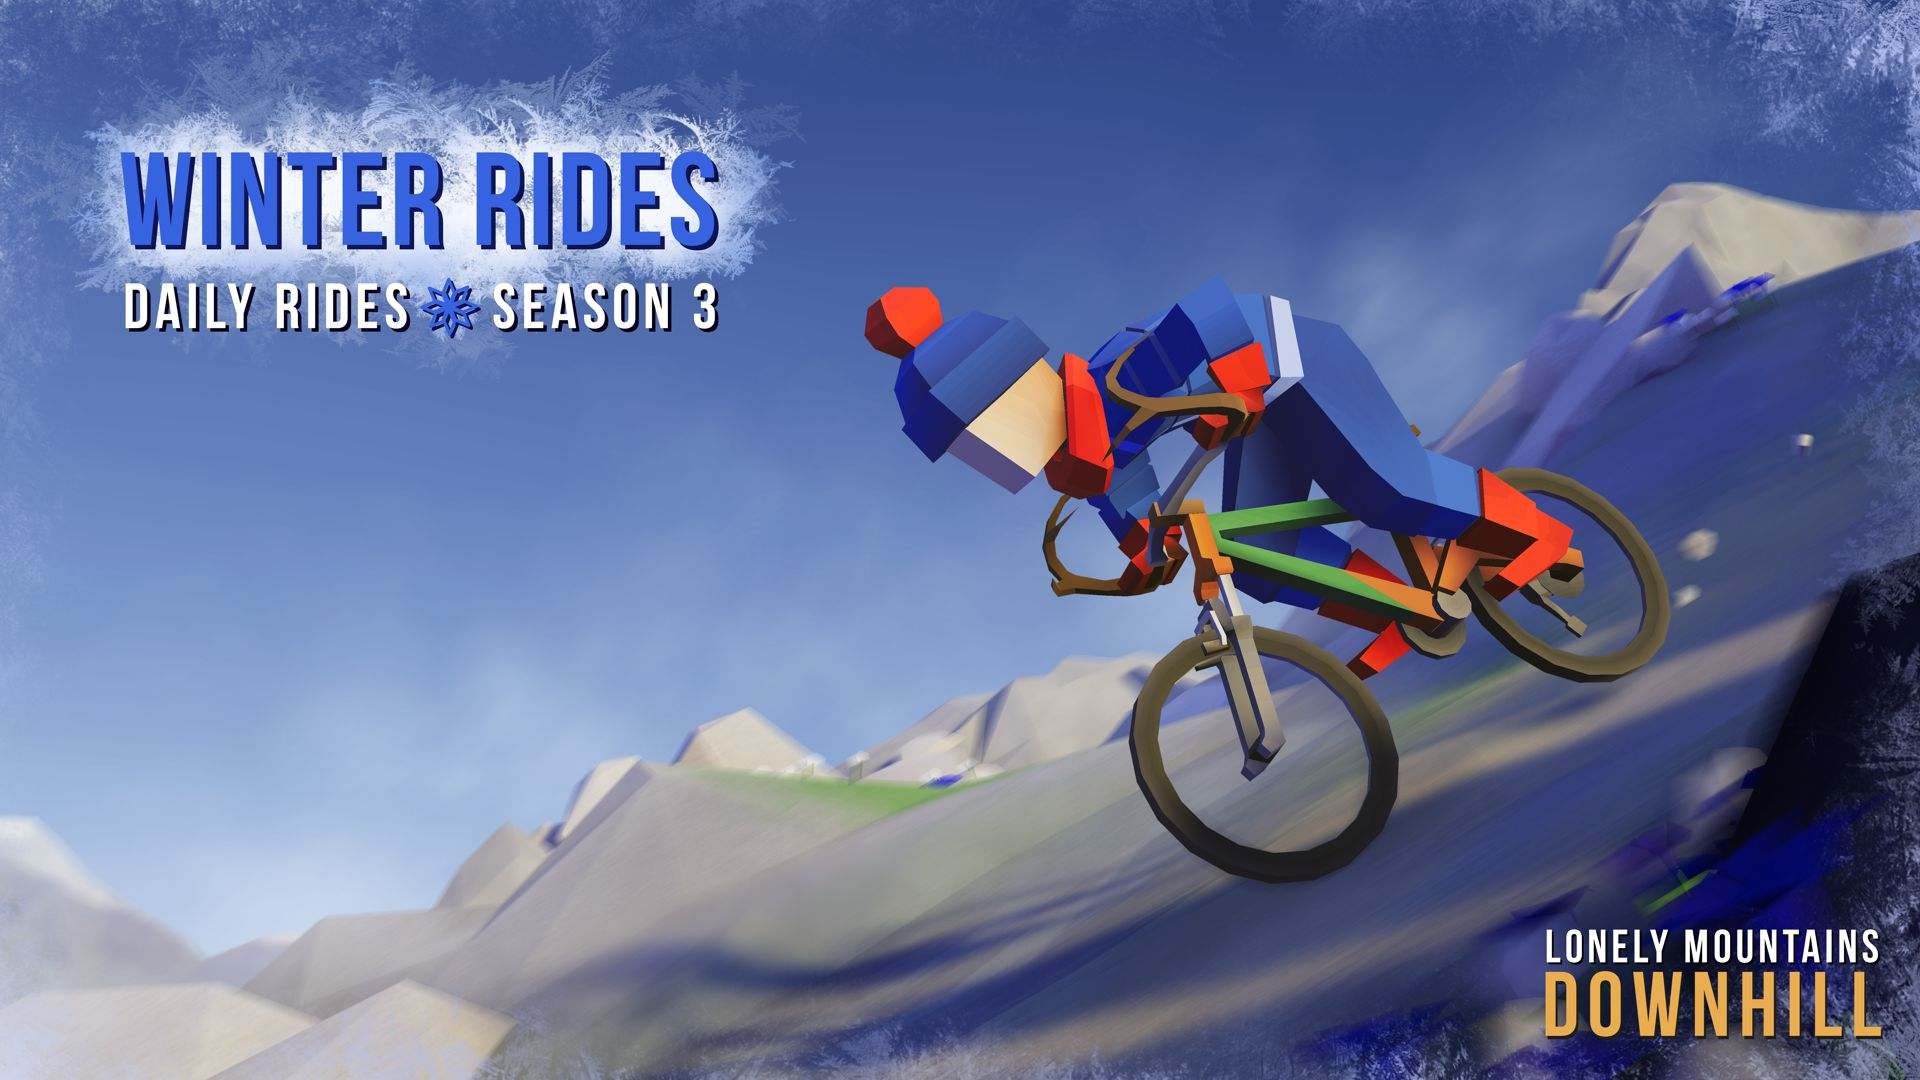 Lonely Mountains Downhill - Winter Rides